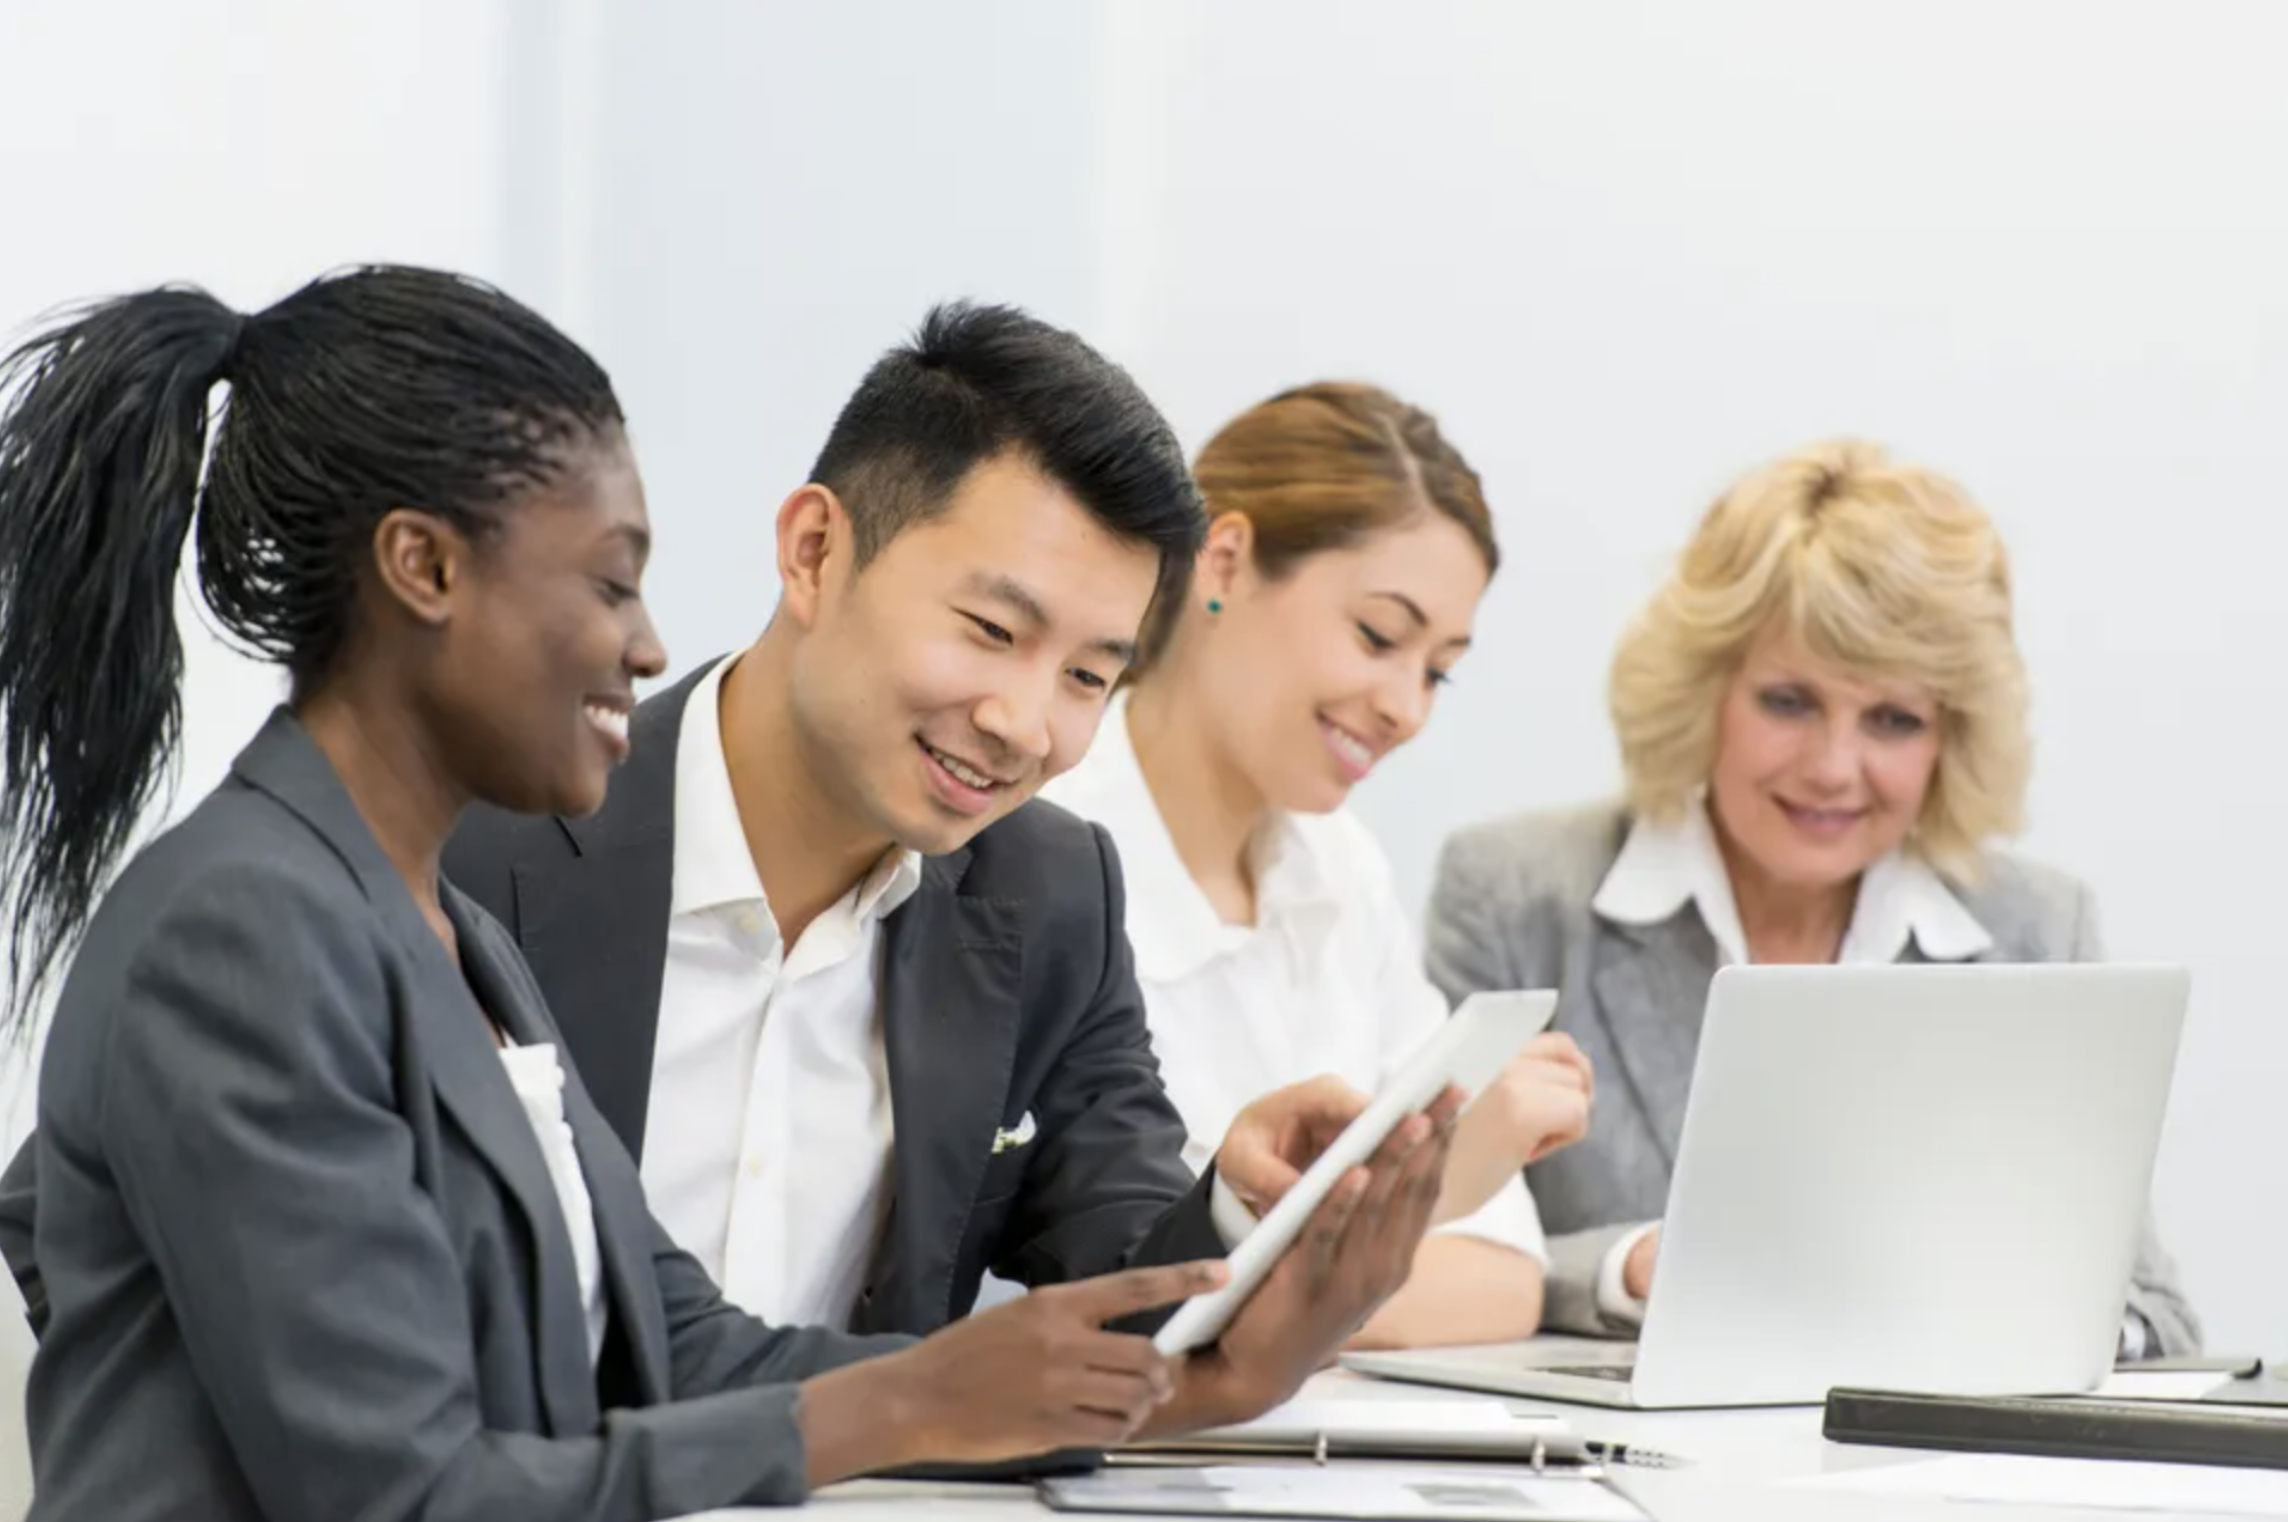 """Stock photo of Simu Liu participating in """"group of business people working in office"""""""